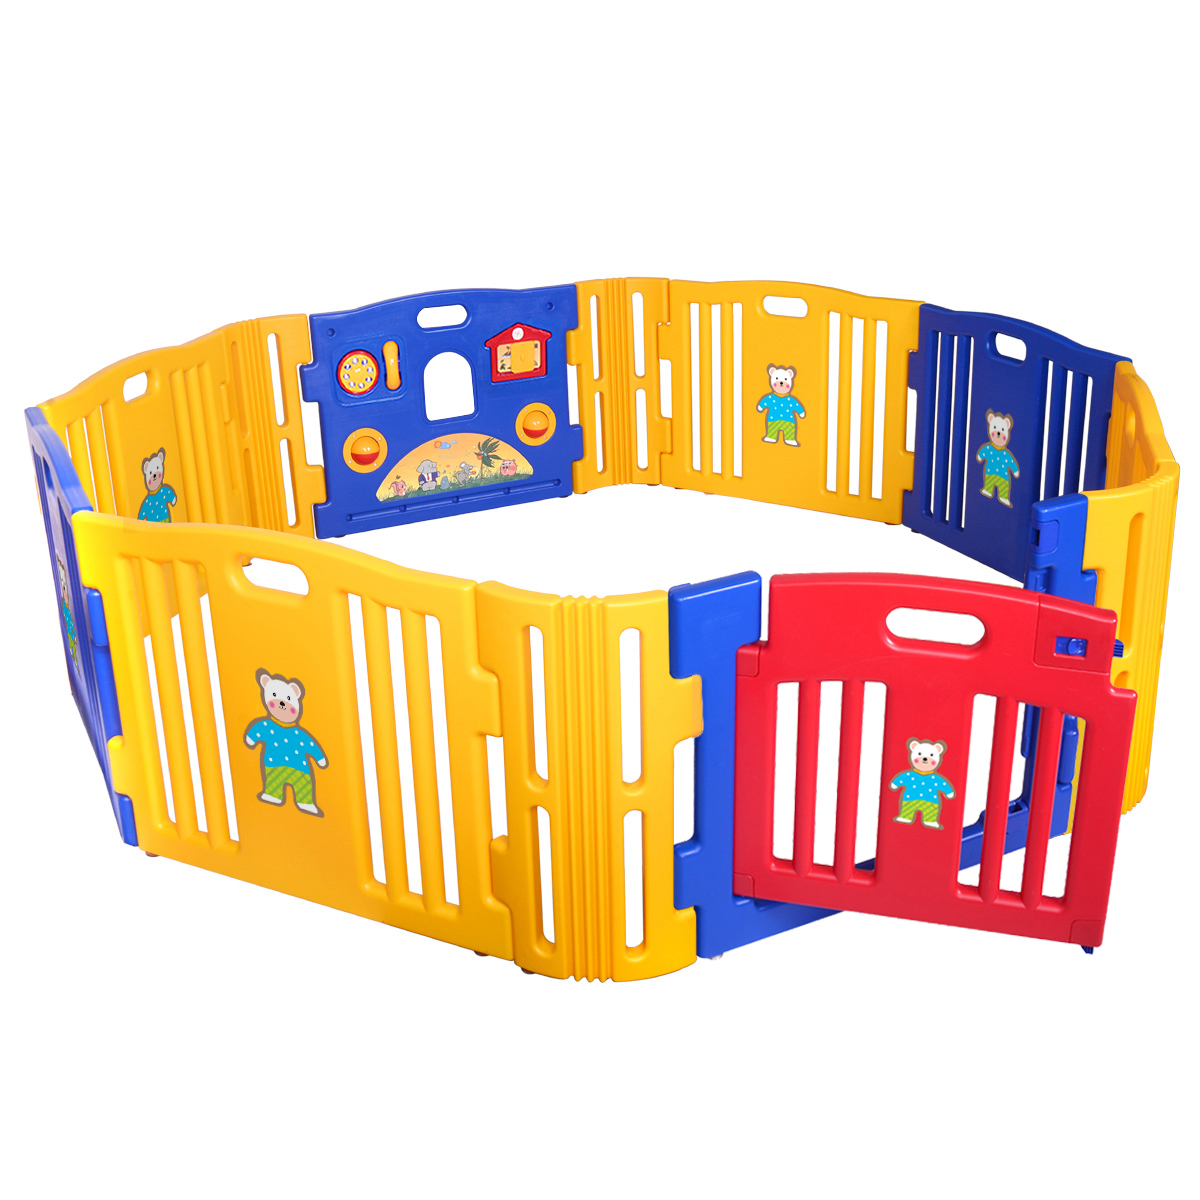 Jaxpety Baby Playpen 12 Panel Foldable High PE Frame Kids Play Center Yard Indoor Outdoor Playards